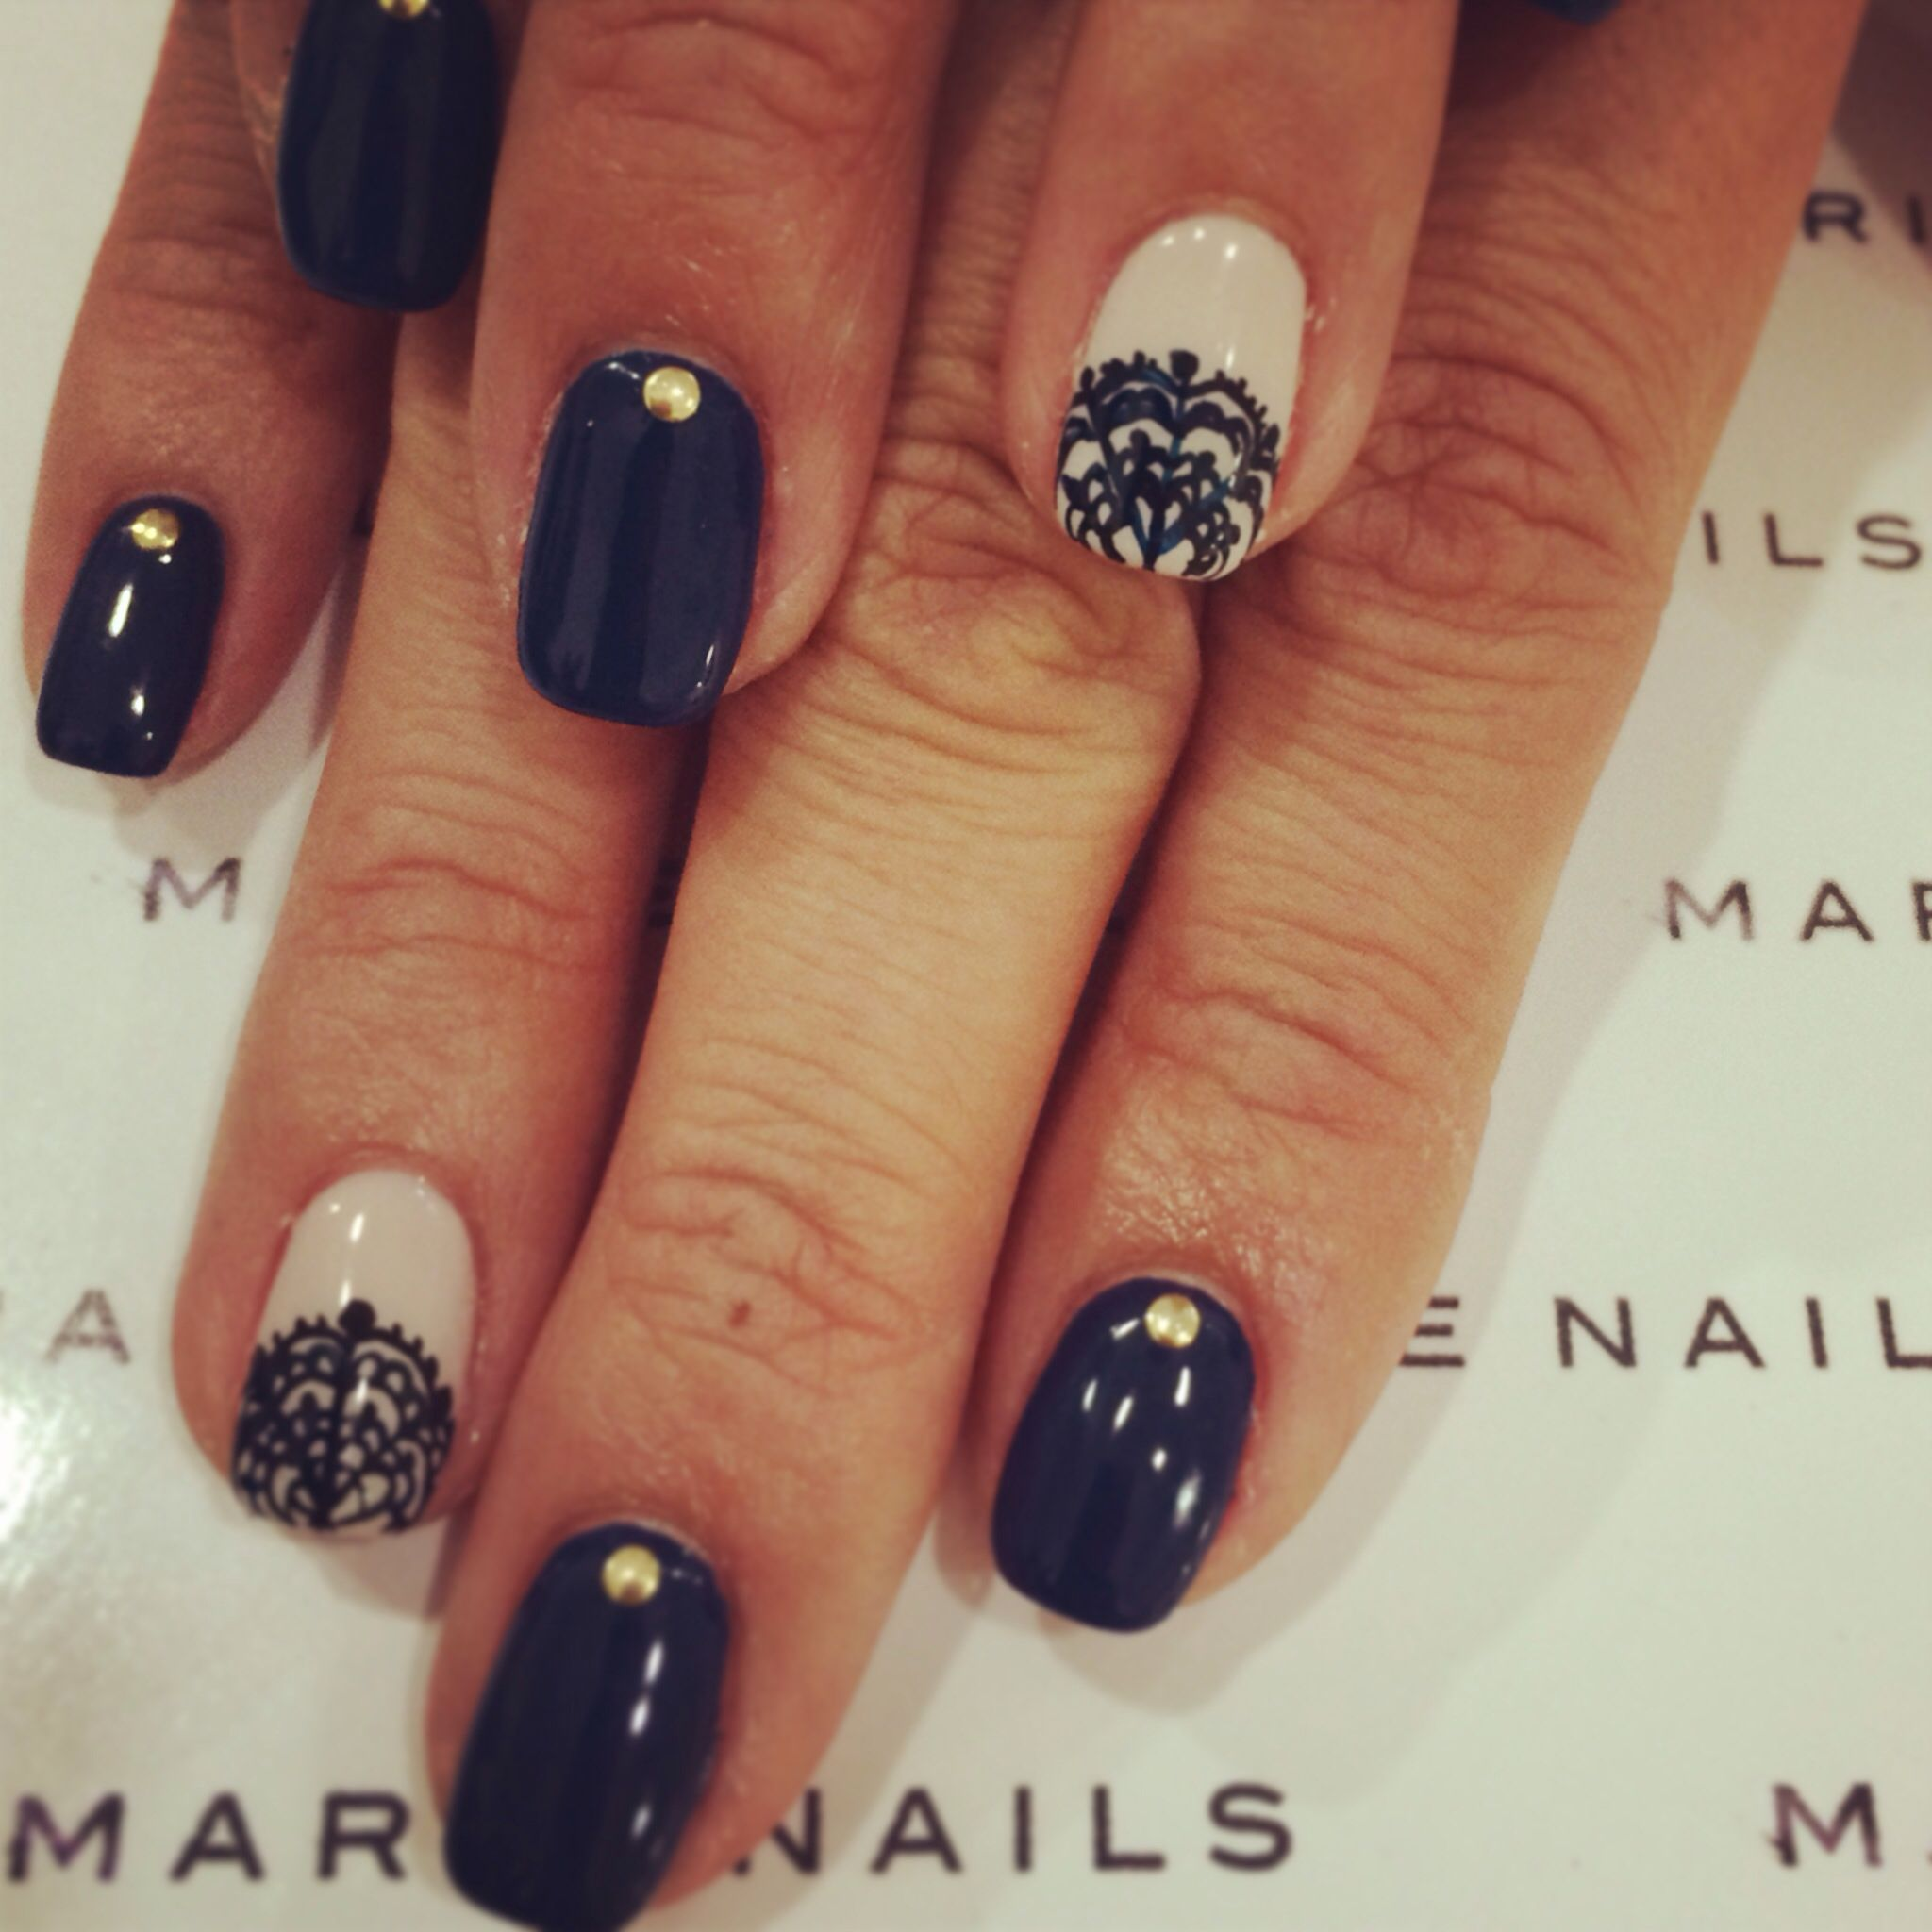 Gel Nails Dark Navy Blue And Nude With Lace Designs Nail